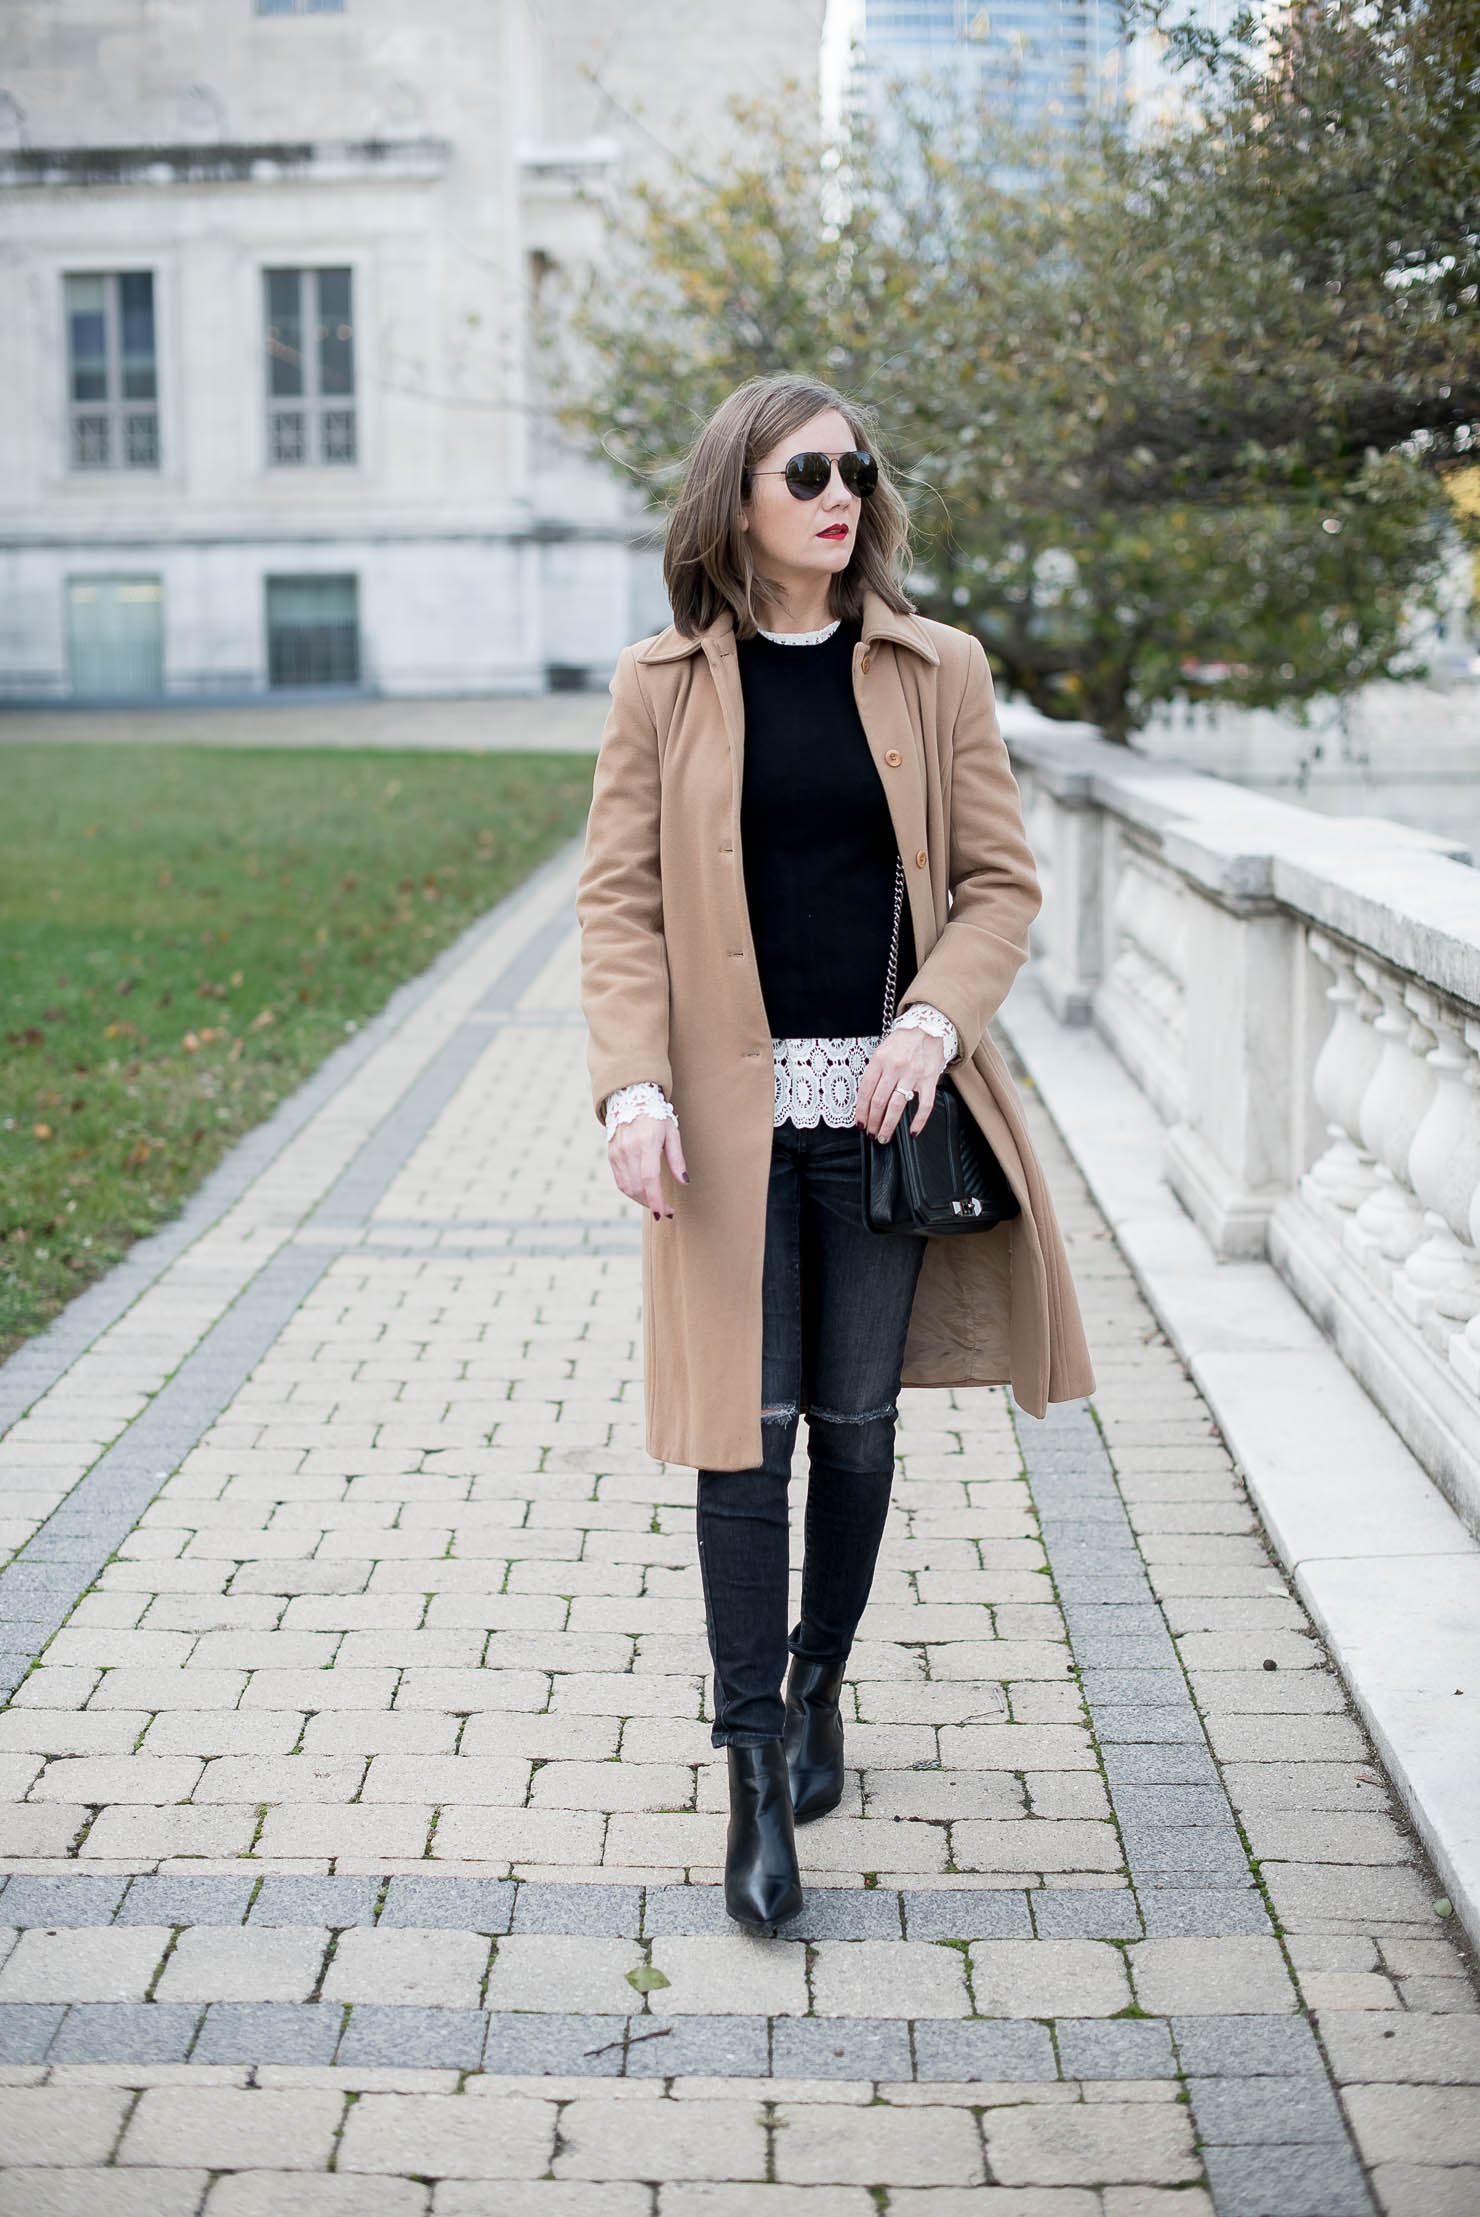 a-menswear-inspired-outfit-with-lace-accents-wardrobe-workhorse-camel-coat